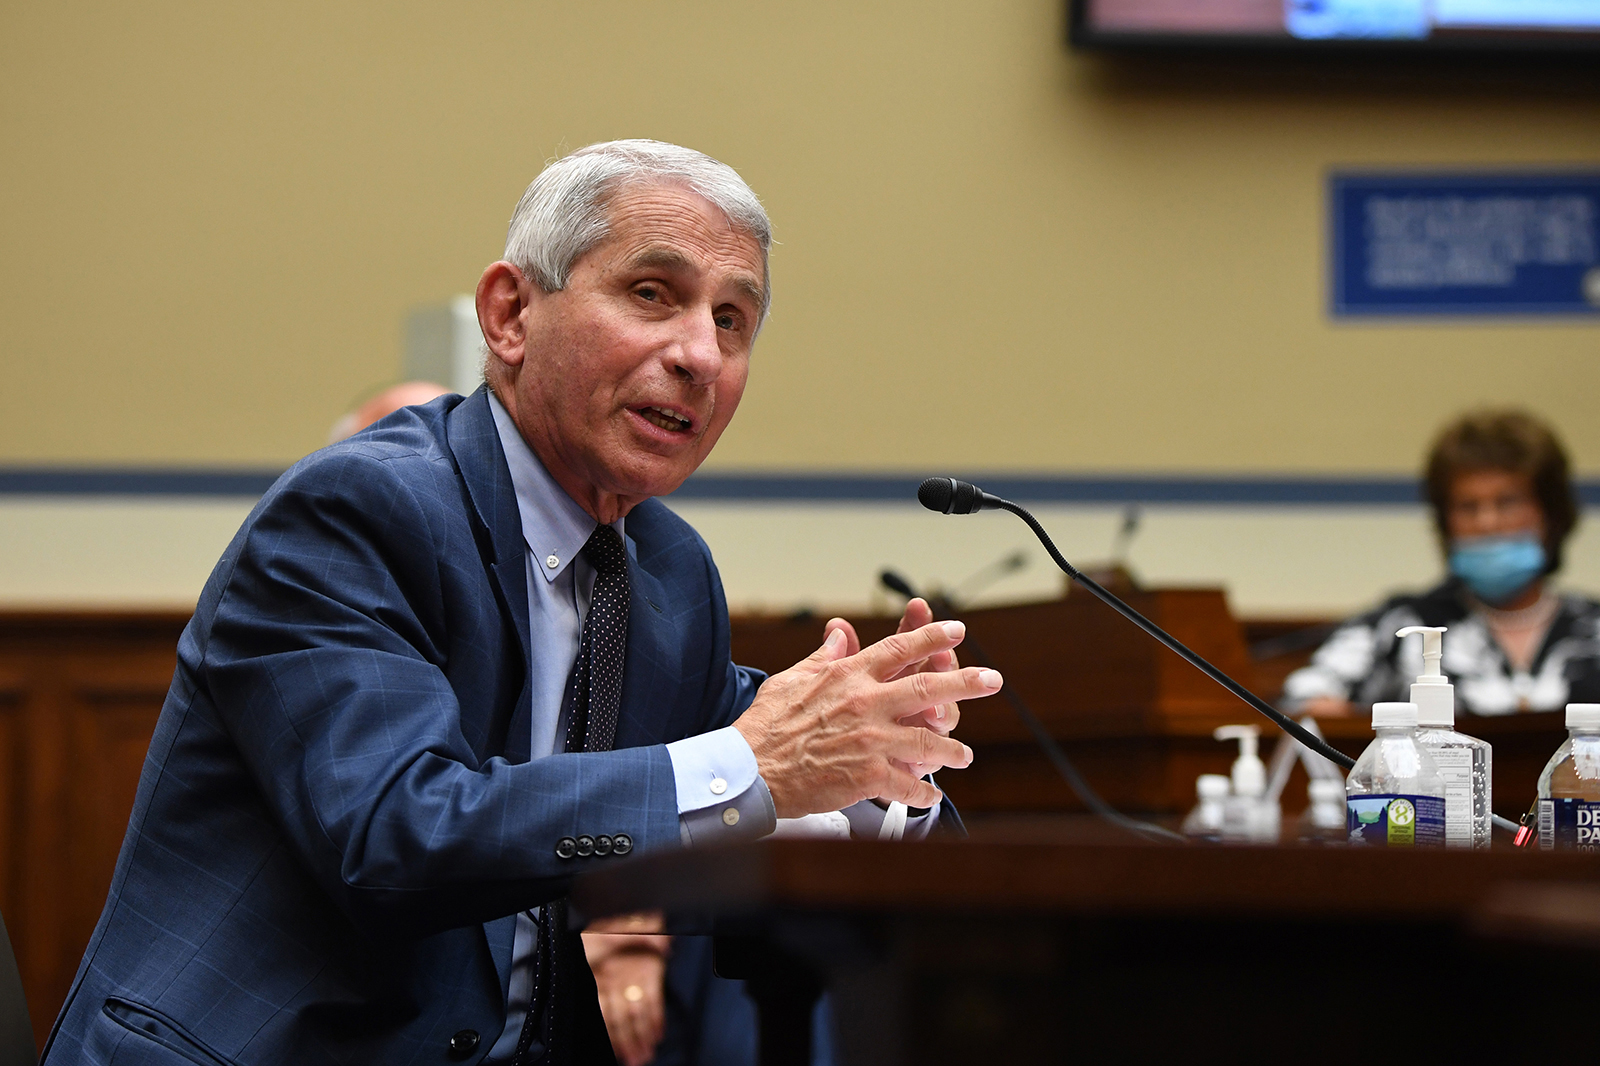 Dr. Anthony Fauci, director of the National Institute for Allergy and Infectious Diseases, testifies before a House Subcommittee on the Coronavirus Crisis hearing on July 31.